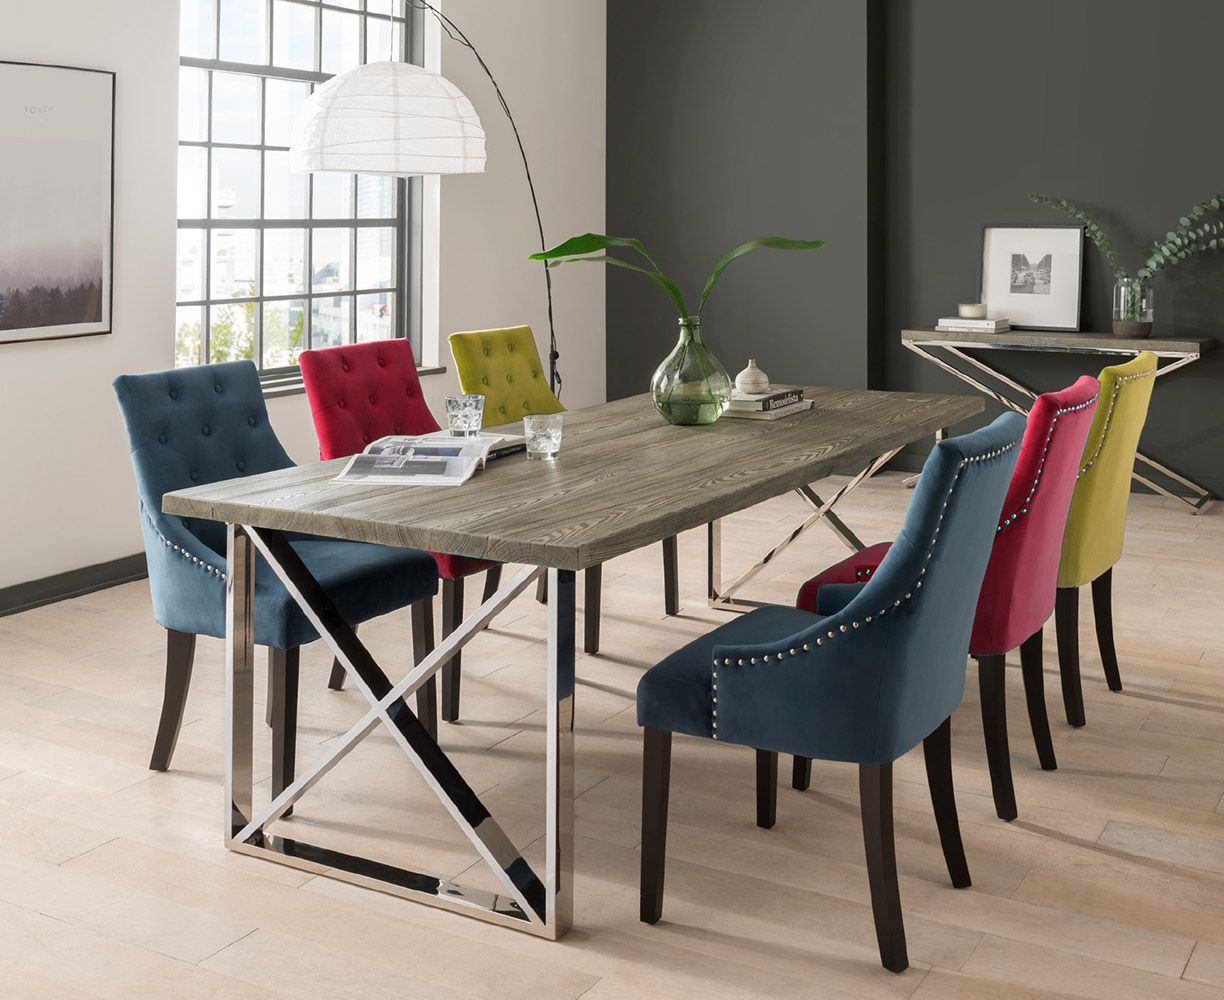 Add A Pop Of Colour To Neutral Decor With Our Brushed Velvet